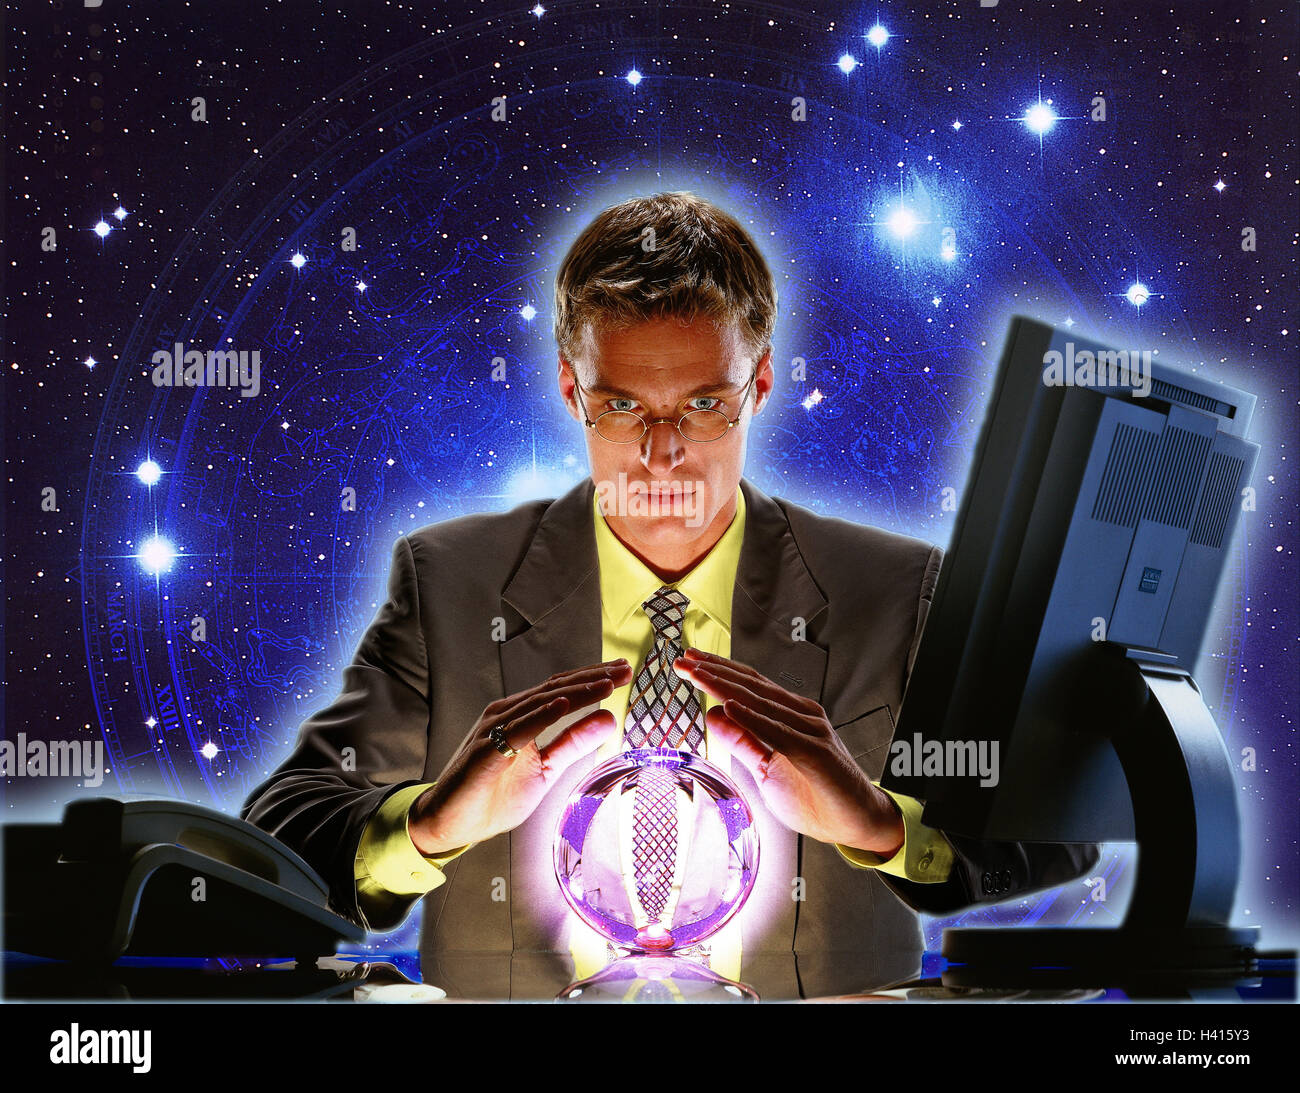 Composing, office, businessman, young, desk, crystal ball, swear, starry skystarry skystarry skies professions, - Stock Image